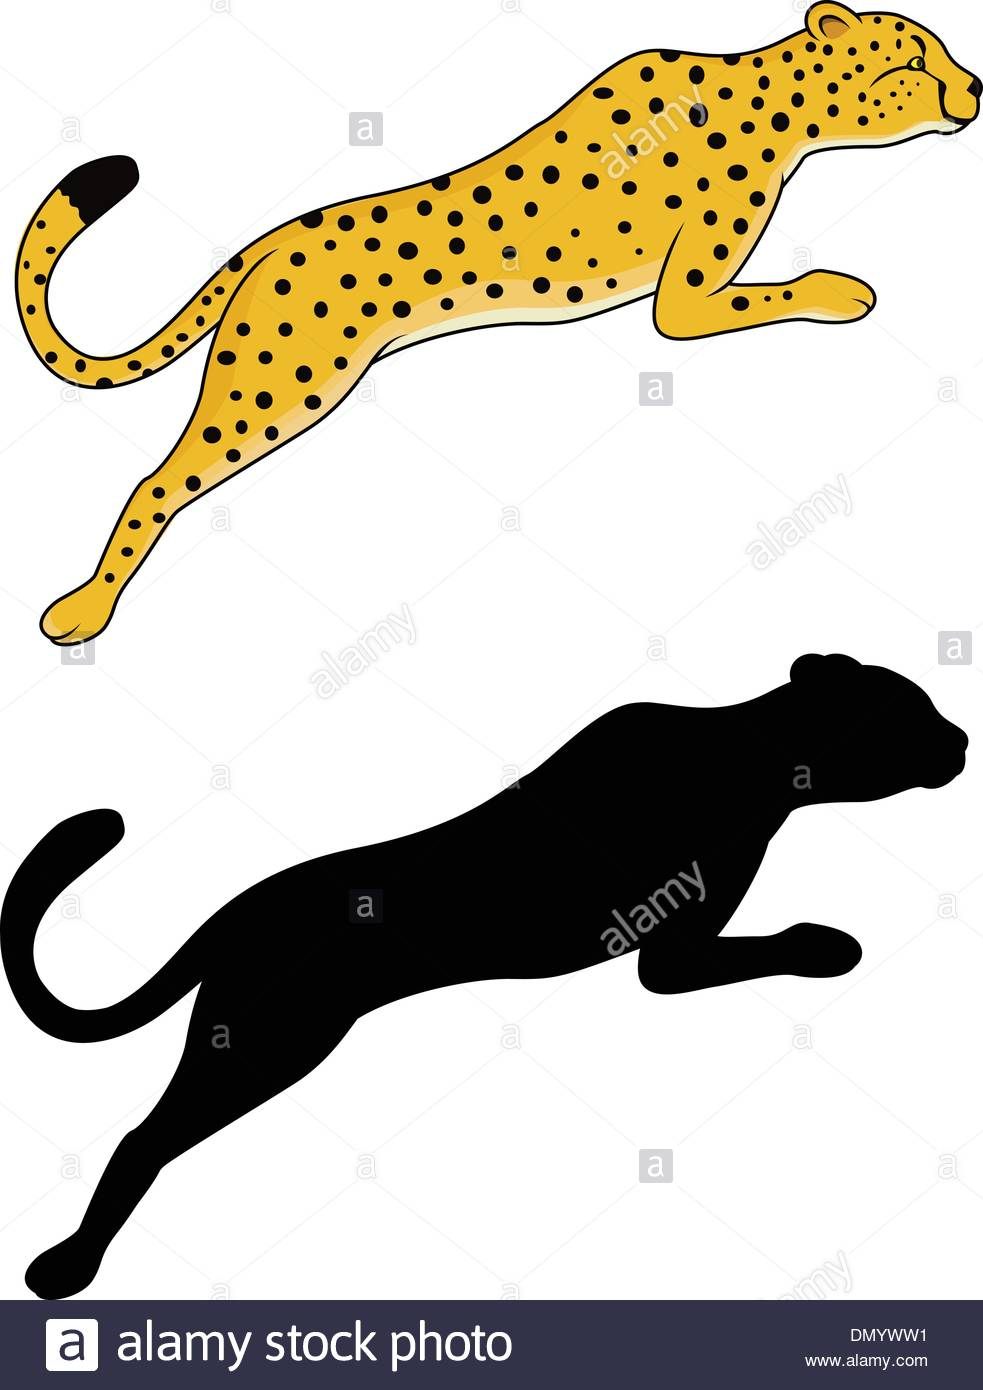 983x1390 Cheetah Jumping Stock Photos Amp Cheetah Jumping Stock Images